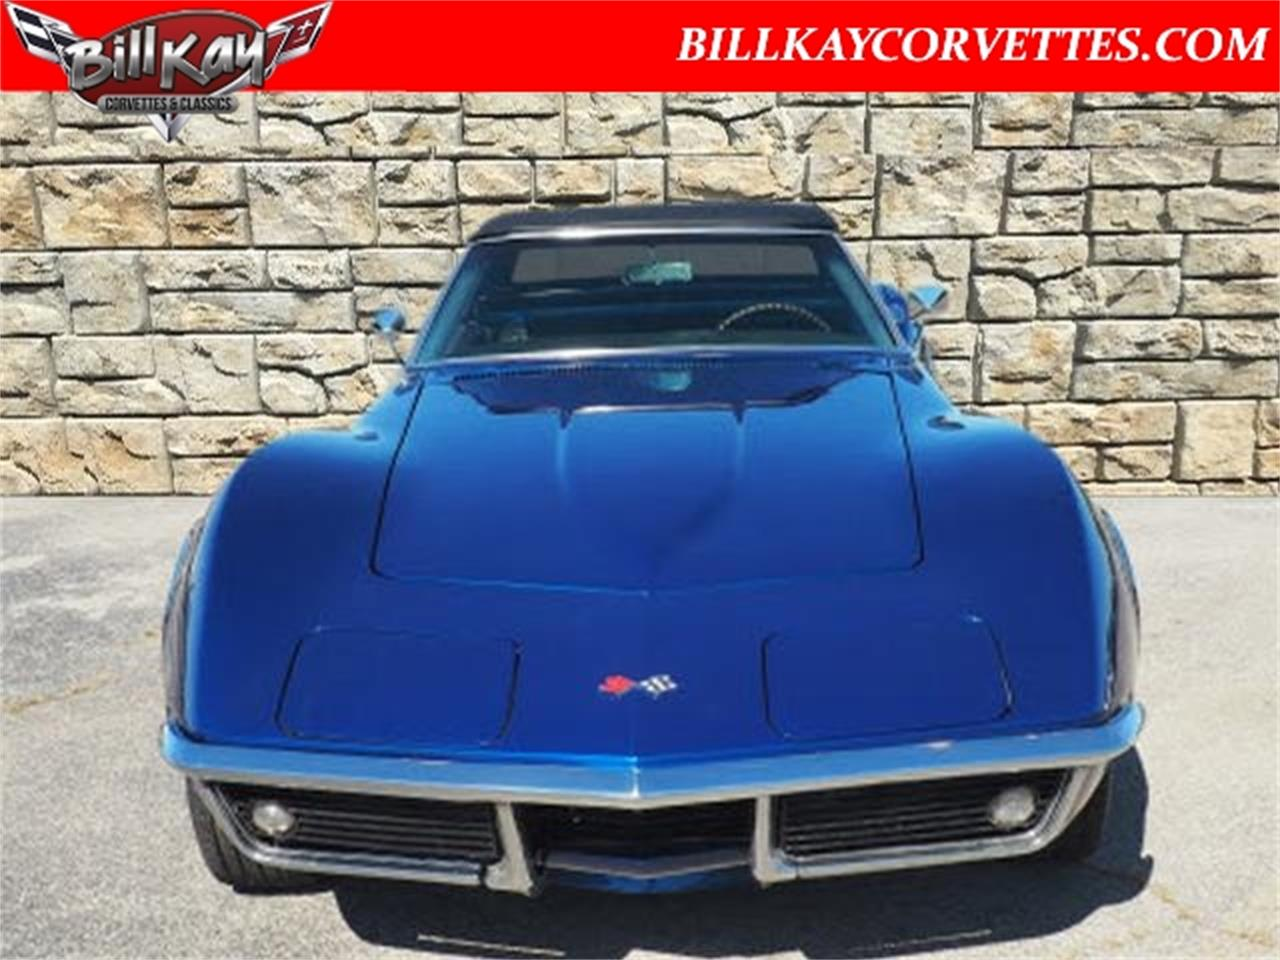 Large Picture of 1968 Chevrolet Corvette located in Downers Grove Illinois - $38,980.00 Offered by Bill Kay Corvettes and Classics - MTY3